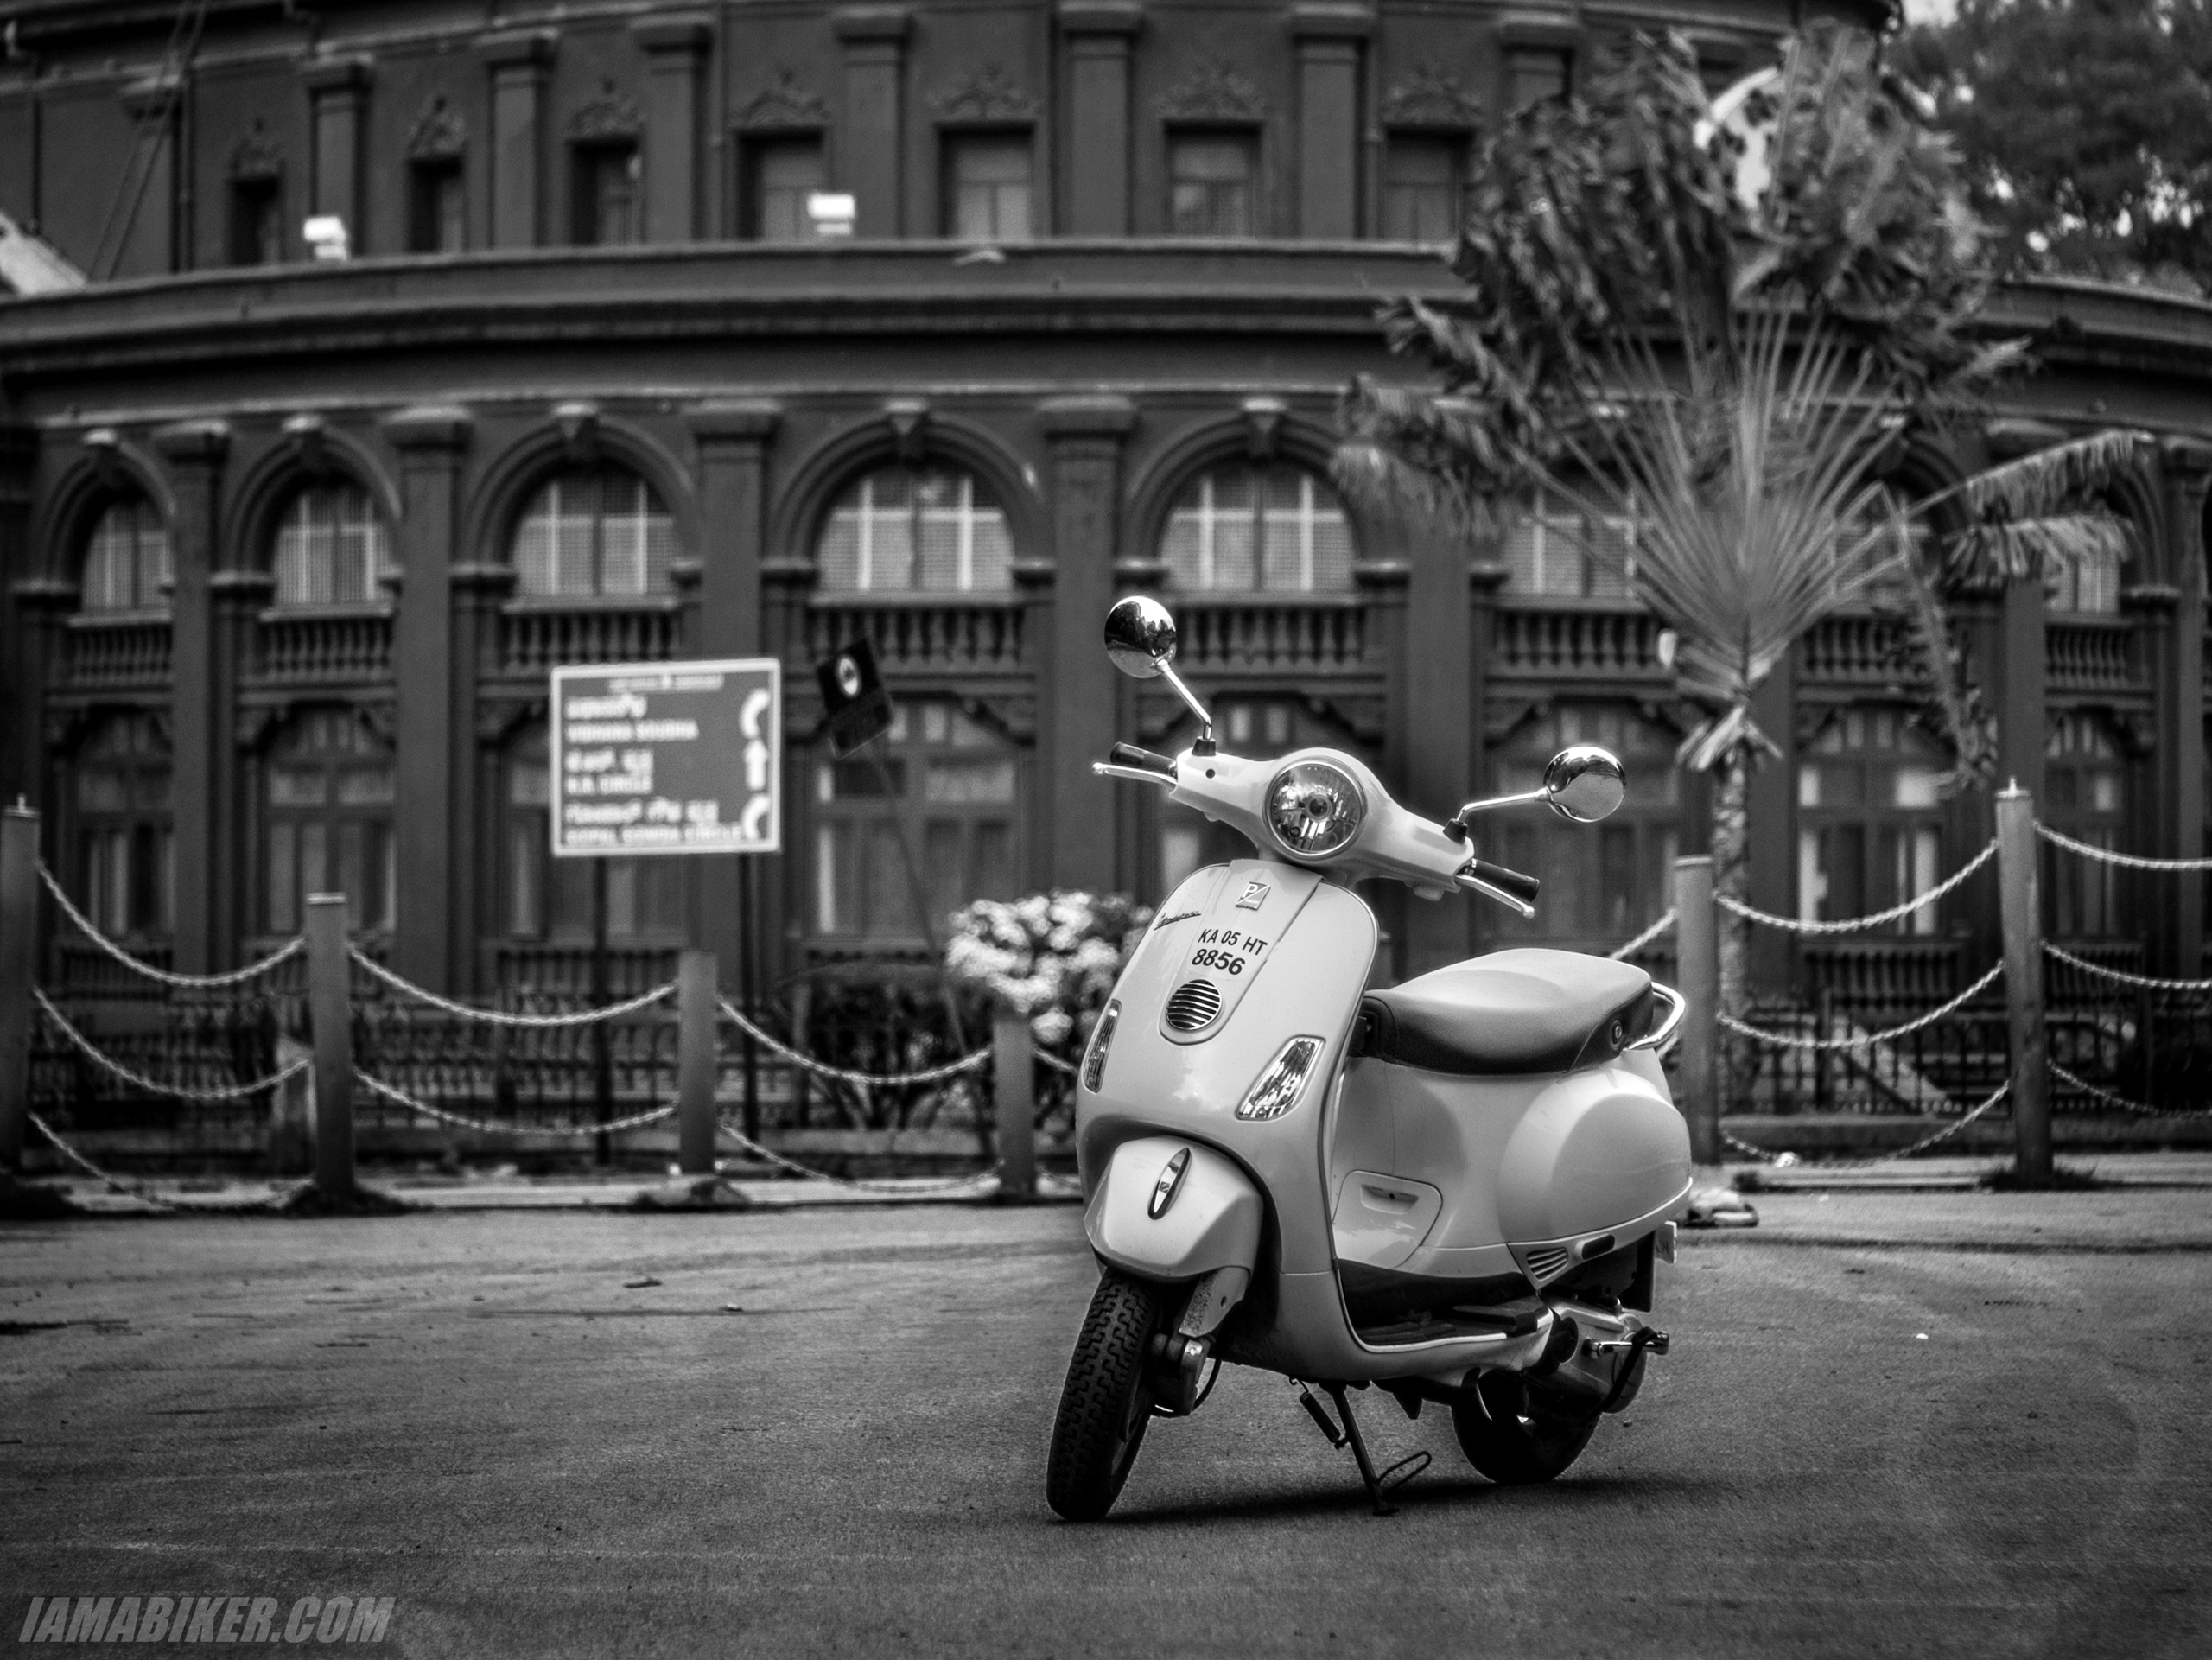 vespa 125 india - regular02